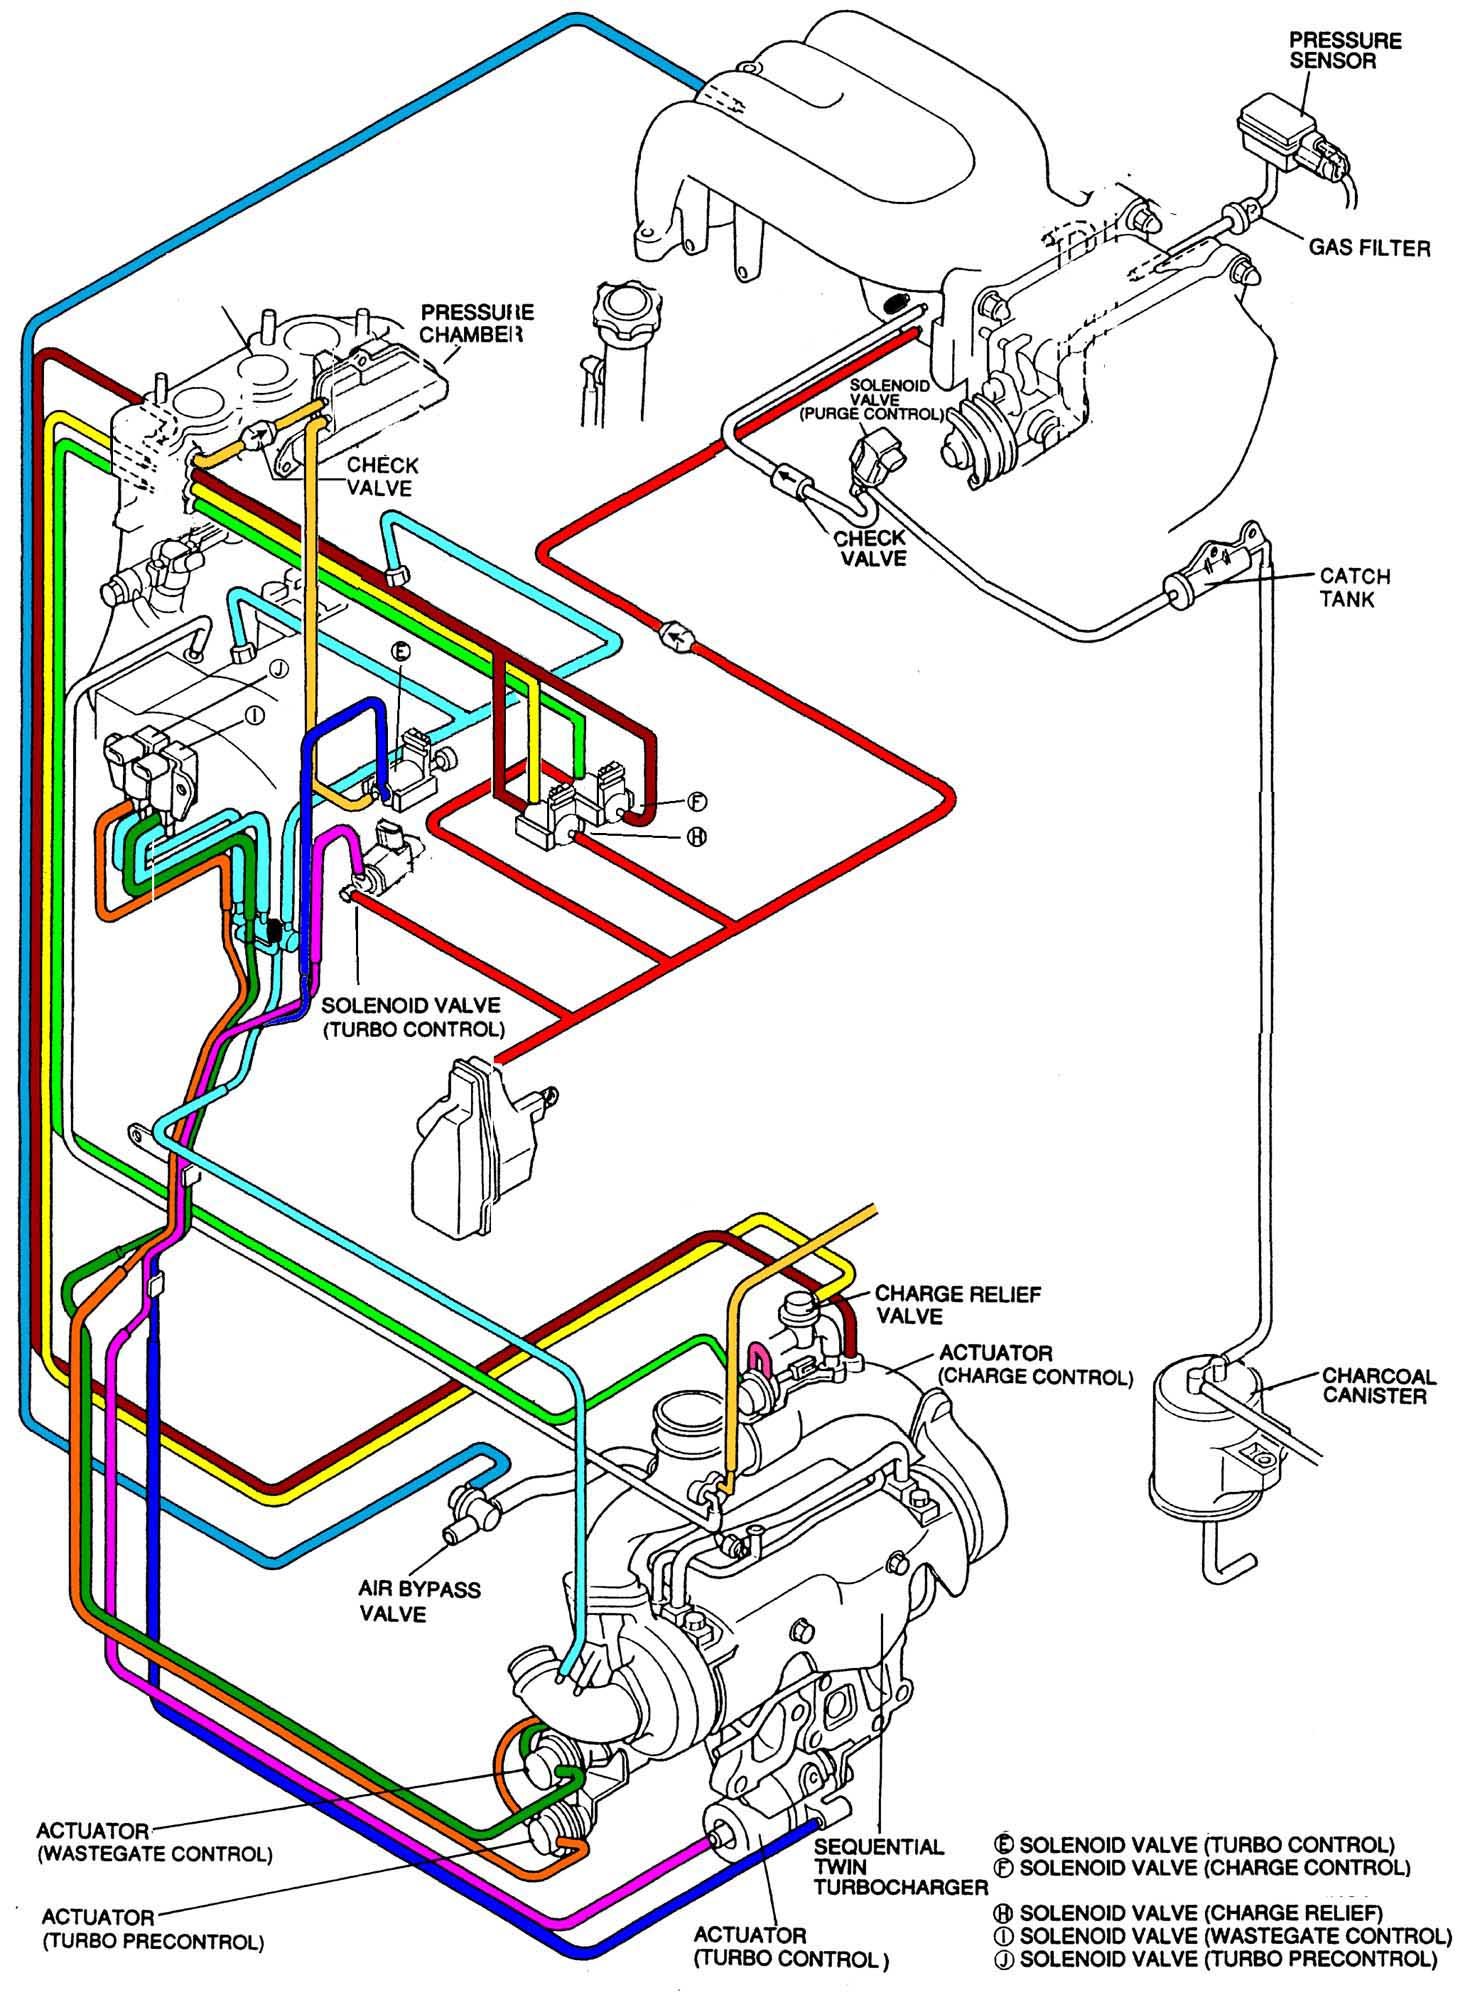 Turbo System Simplification Air Pressure Gauge Wiring Diagram